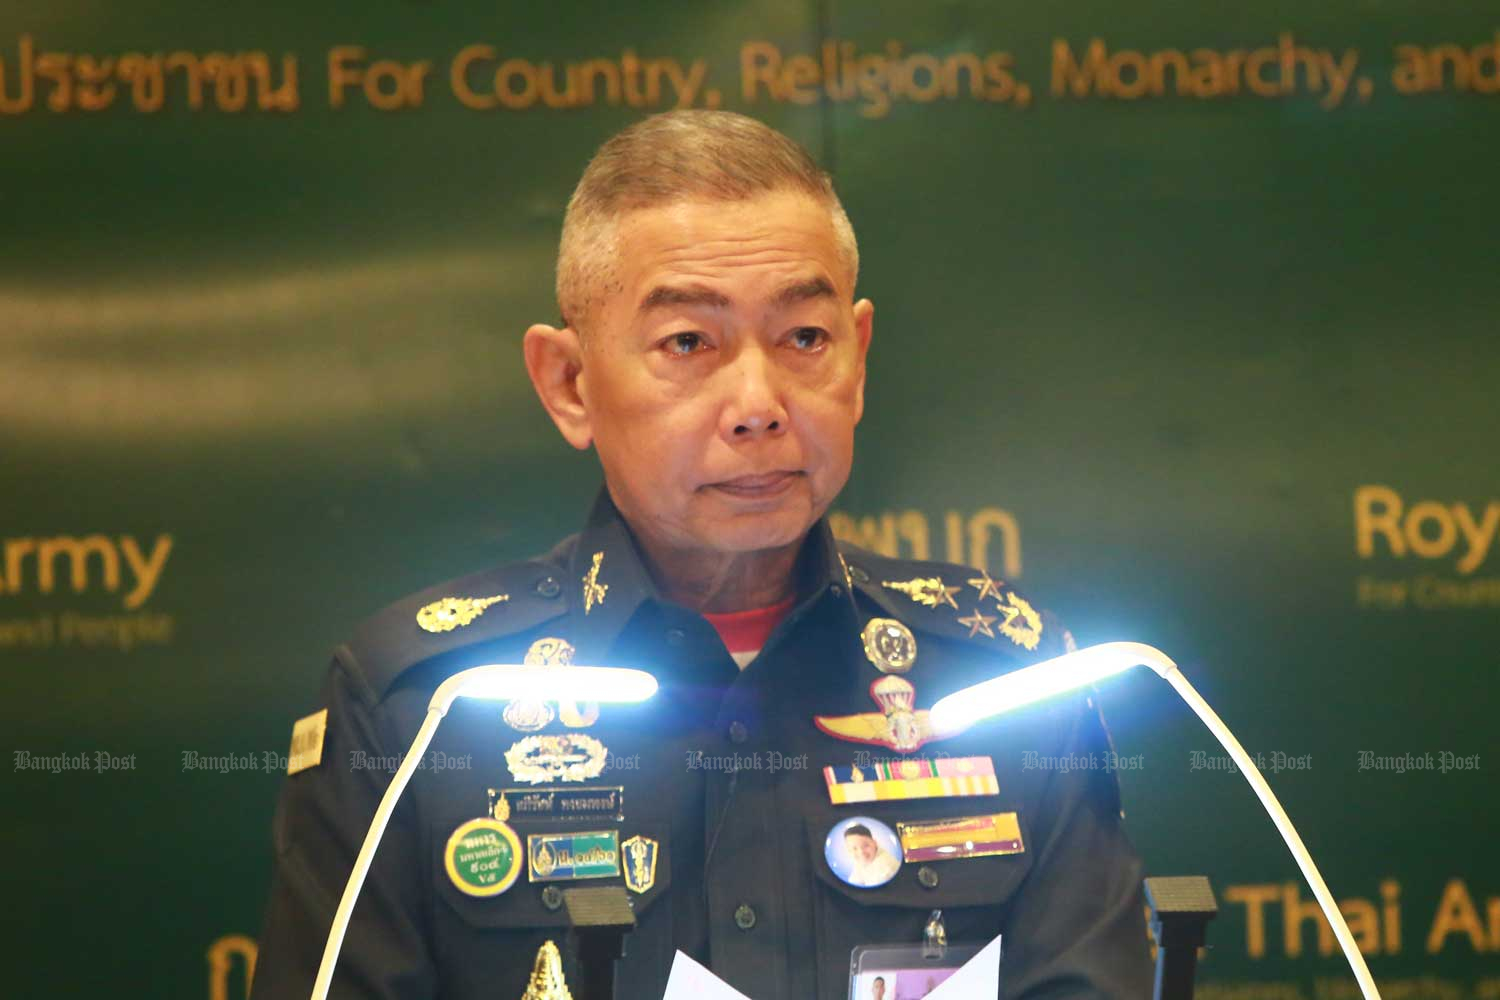 Army chief Gen Apirat Kongsompong during his press conference at Royal Thai Army headquarters in Bangkok on Tuesday. (Photo by Somchai Poomlard)